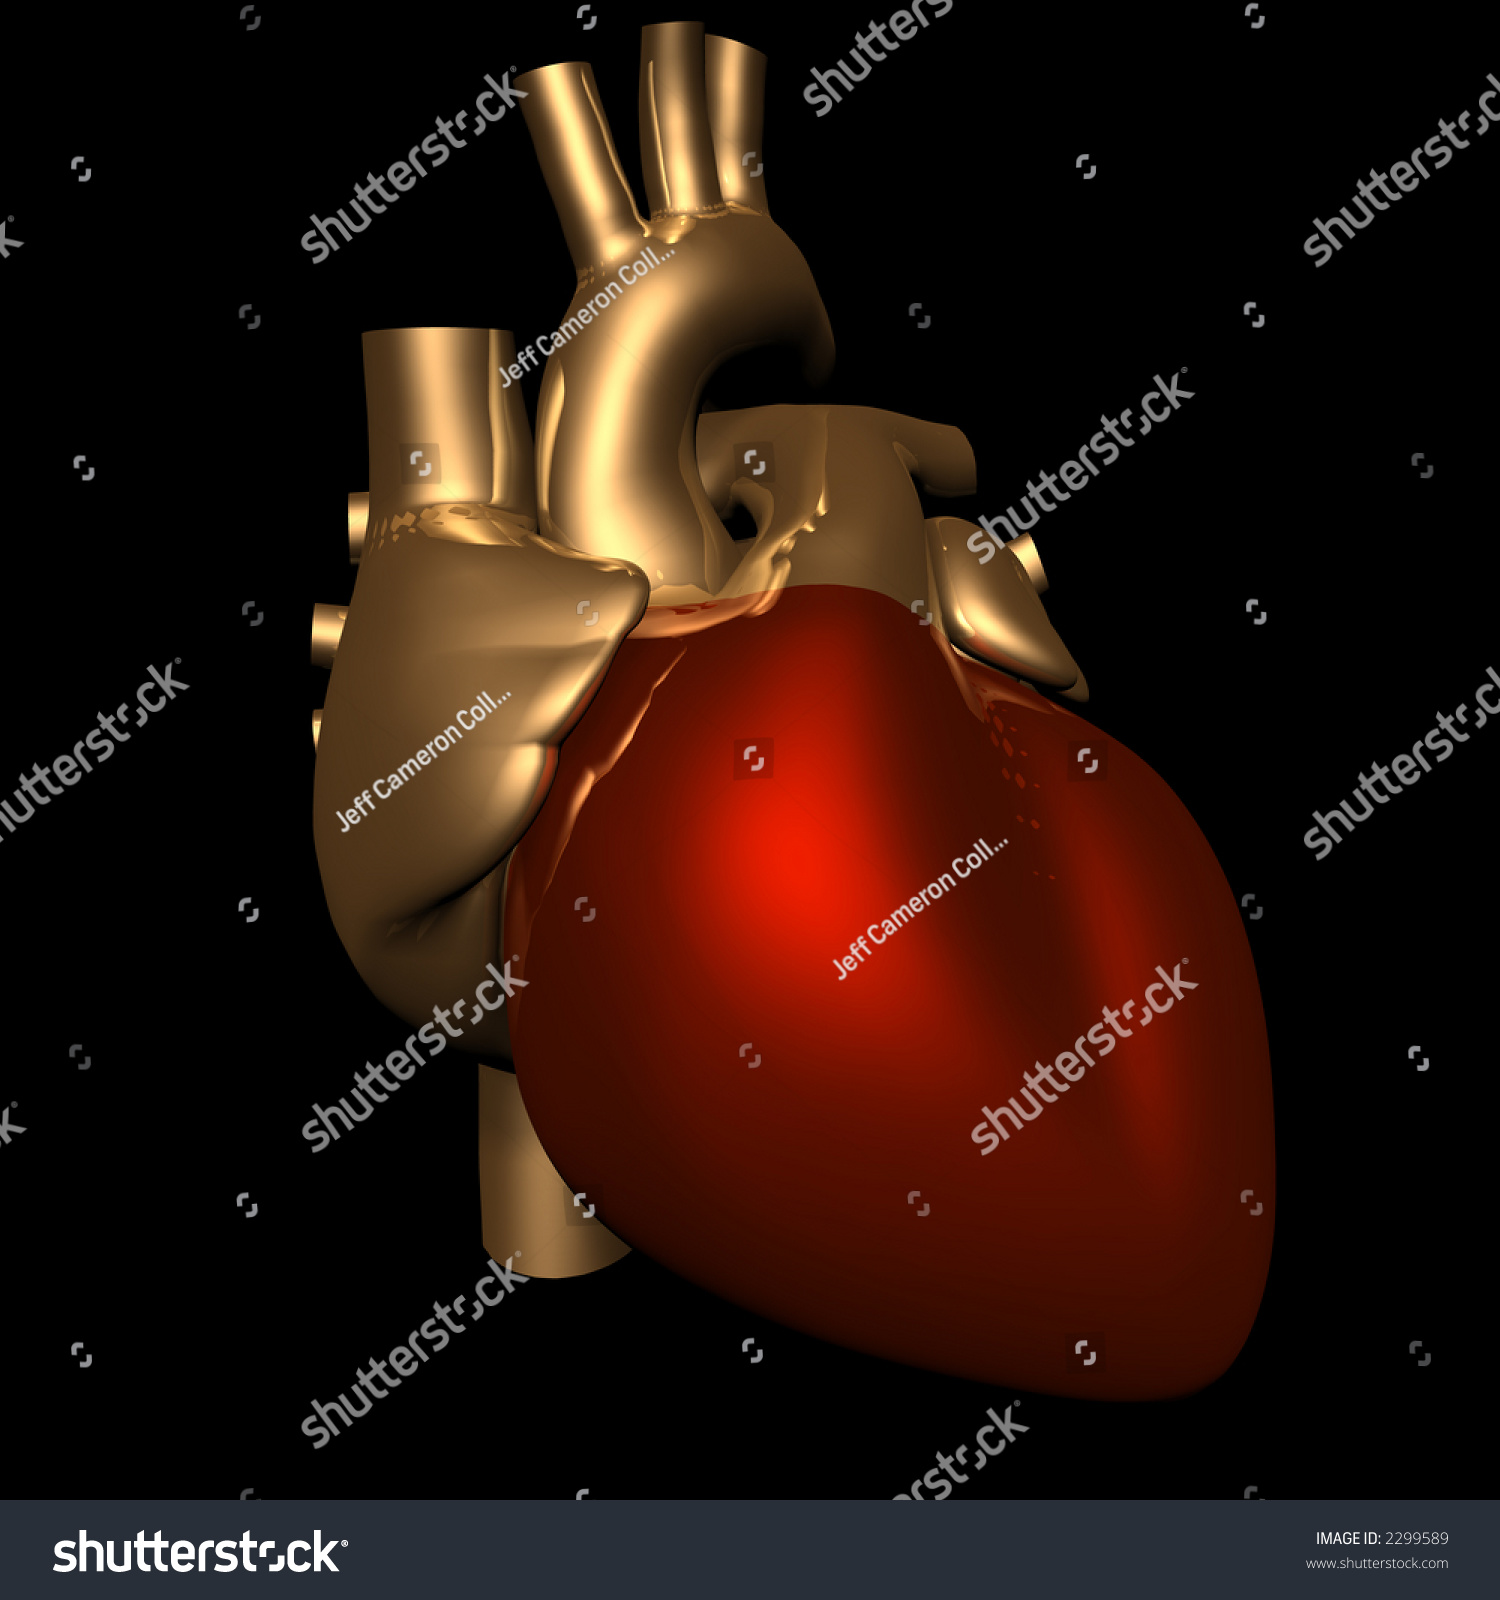 Human Heart In Metallic Gold And Red - 3d Rendered Stock ...